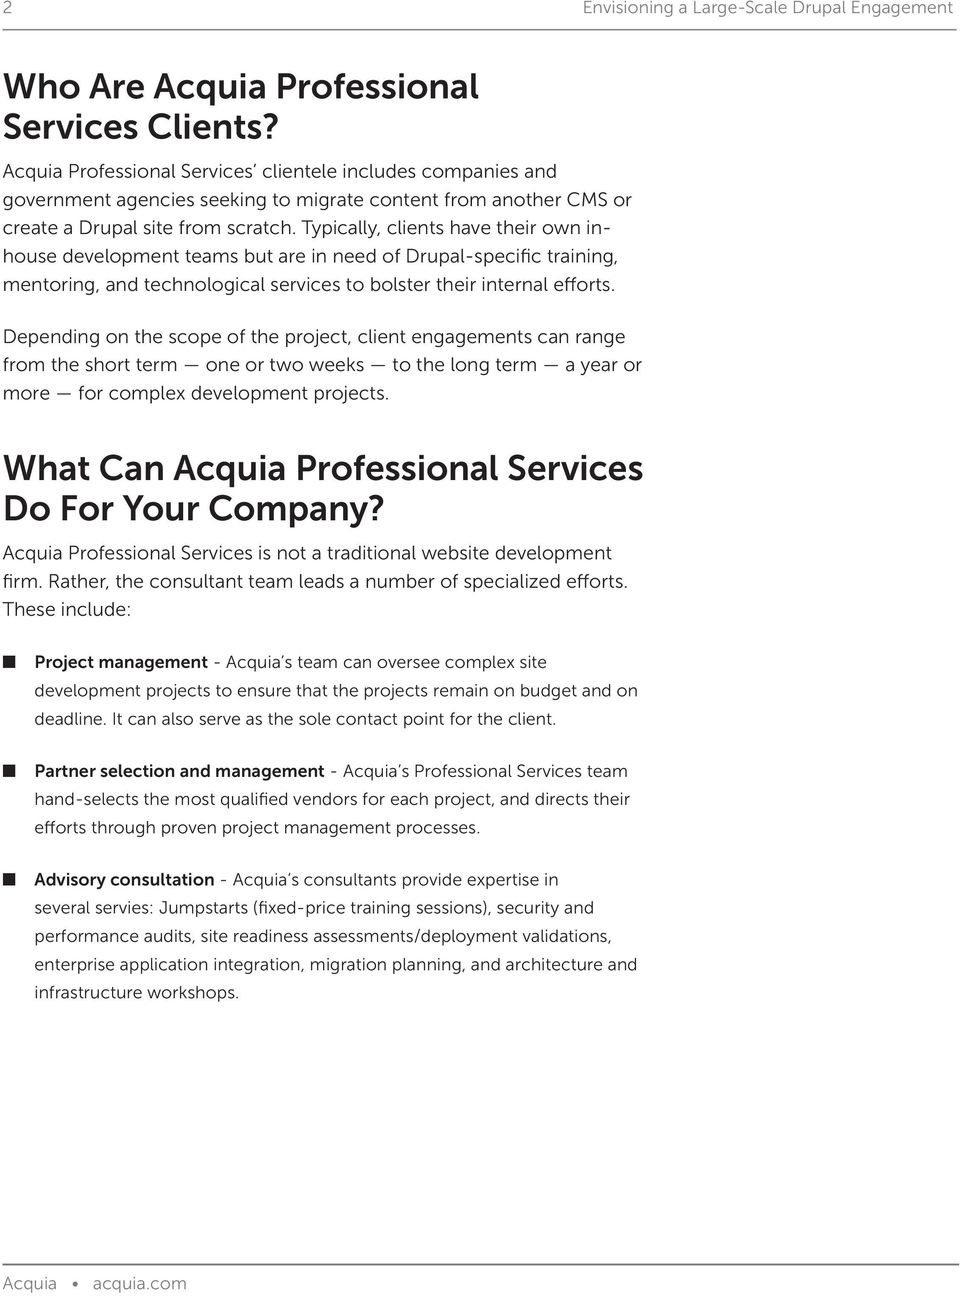 Envisioning a Large-Scale Drupal Engagement with Acquia